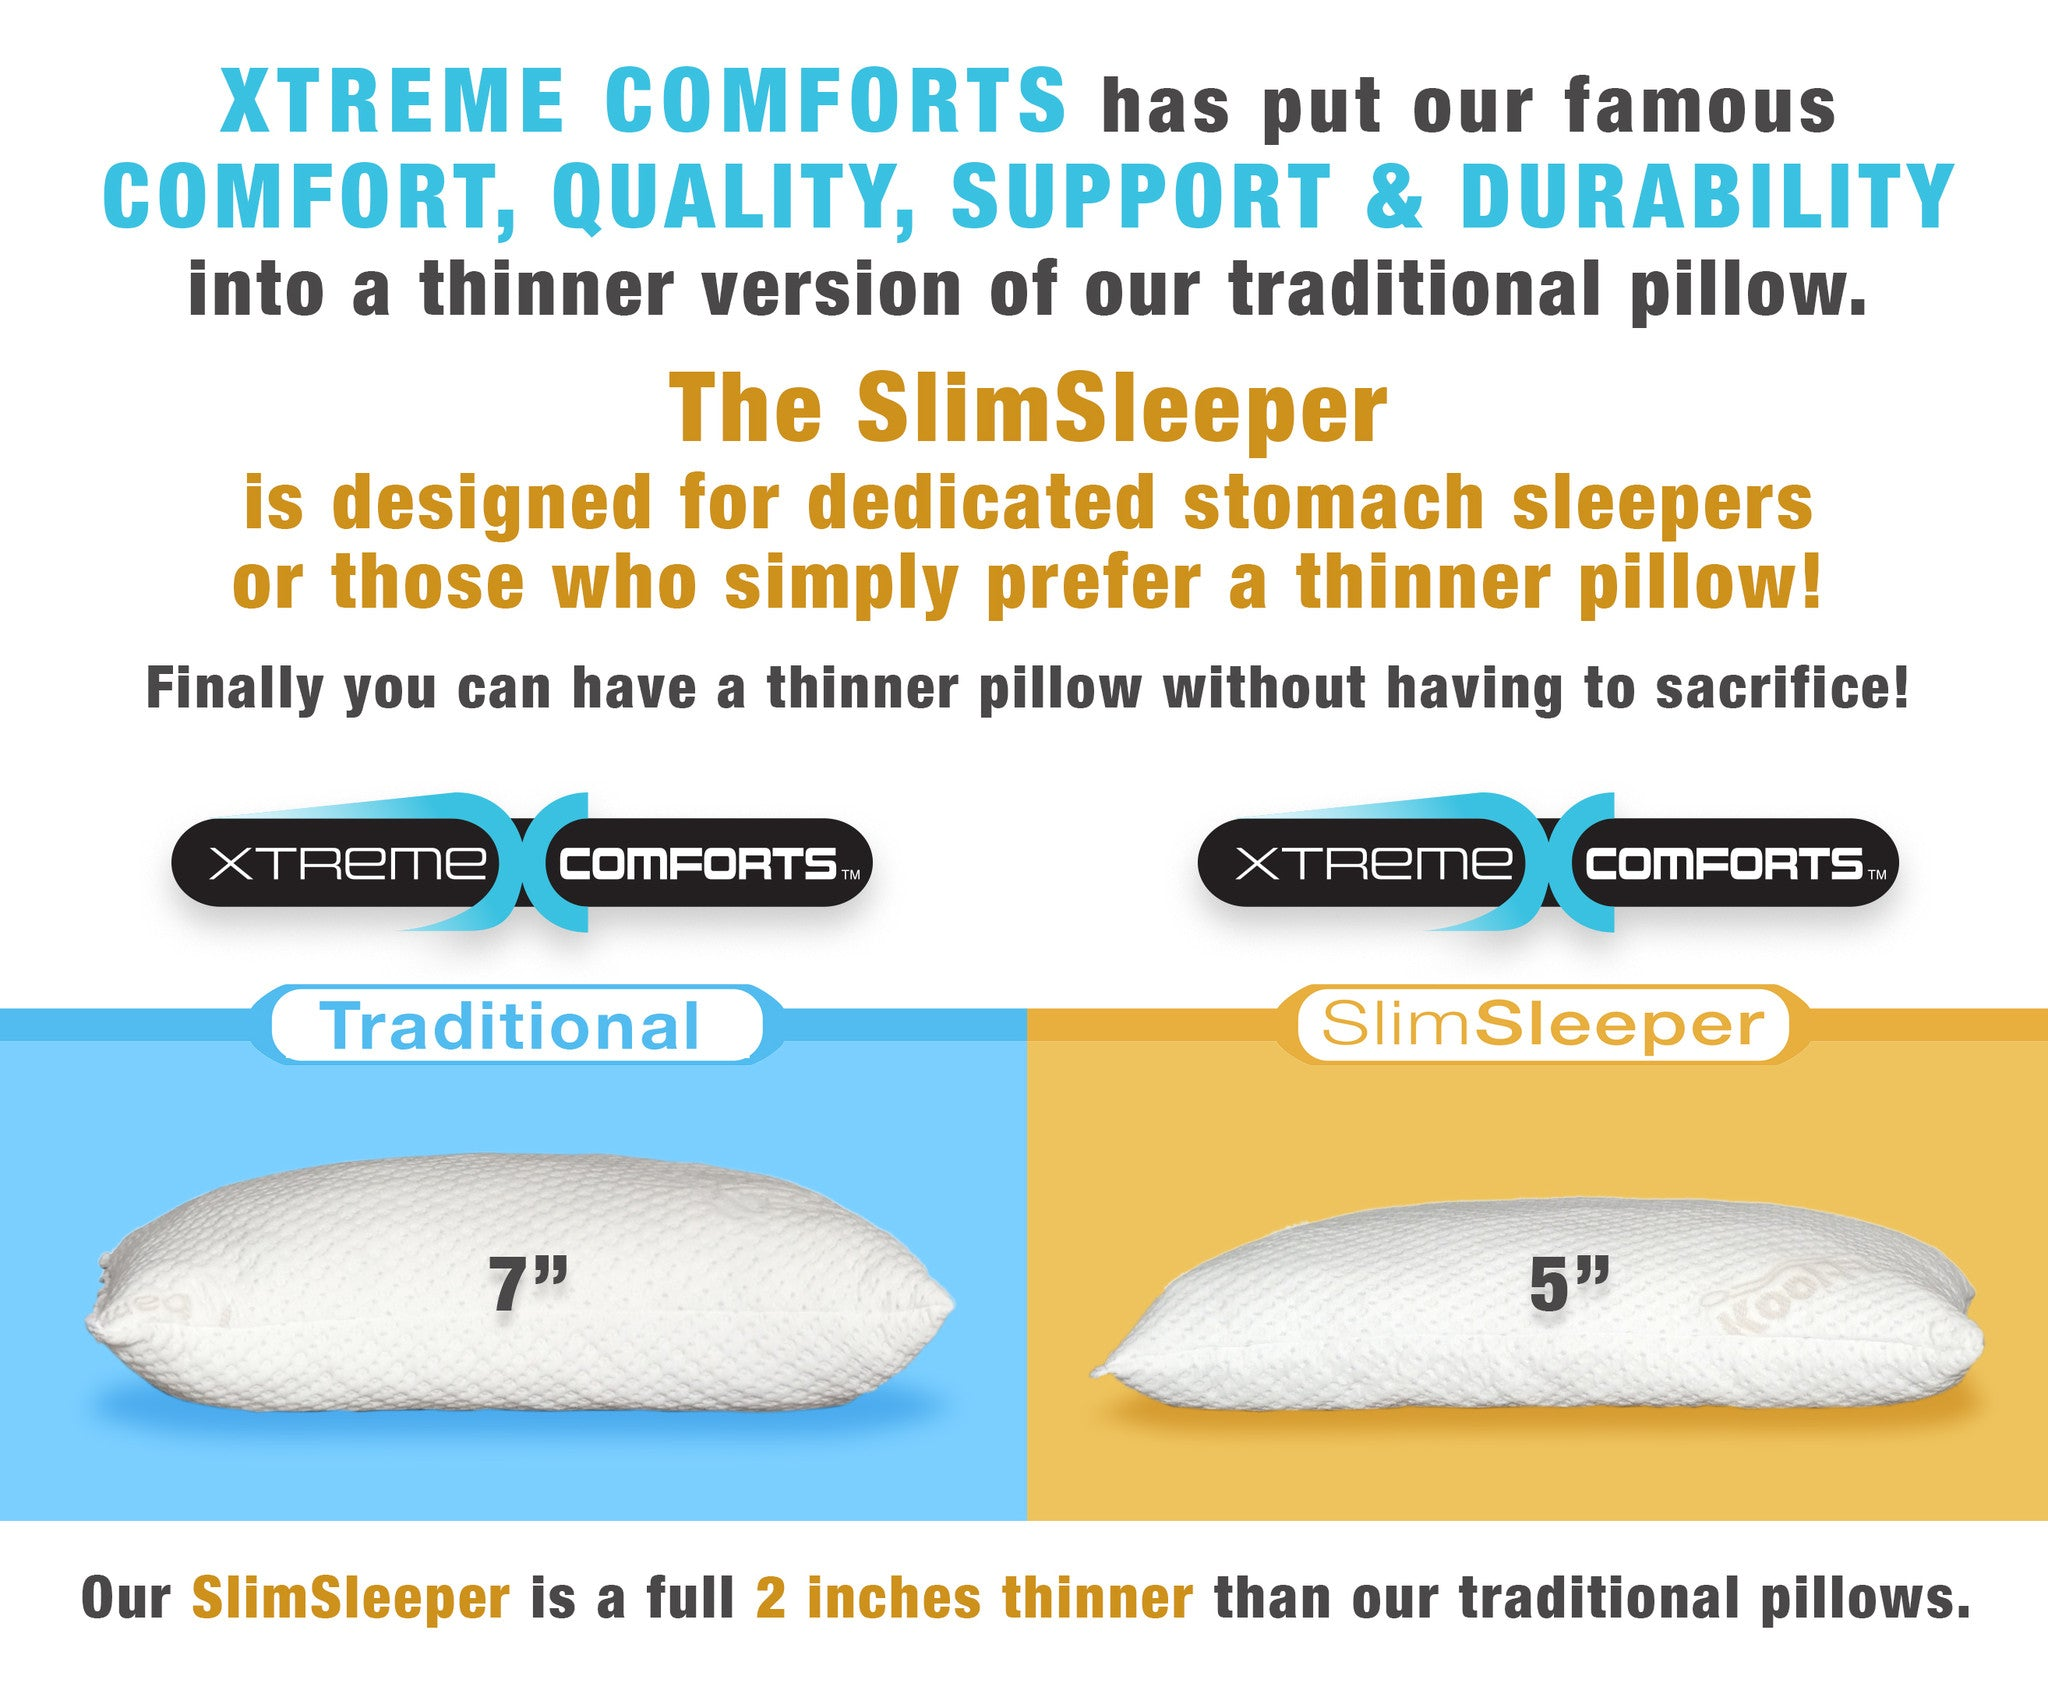 slimsleeper shredded memory foam pillow with bamboo cover